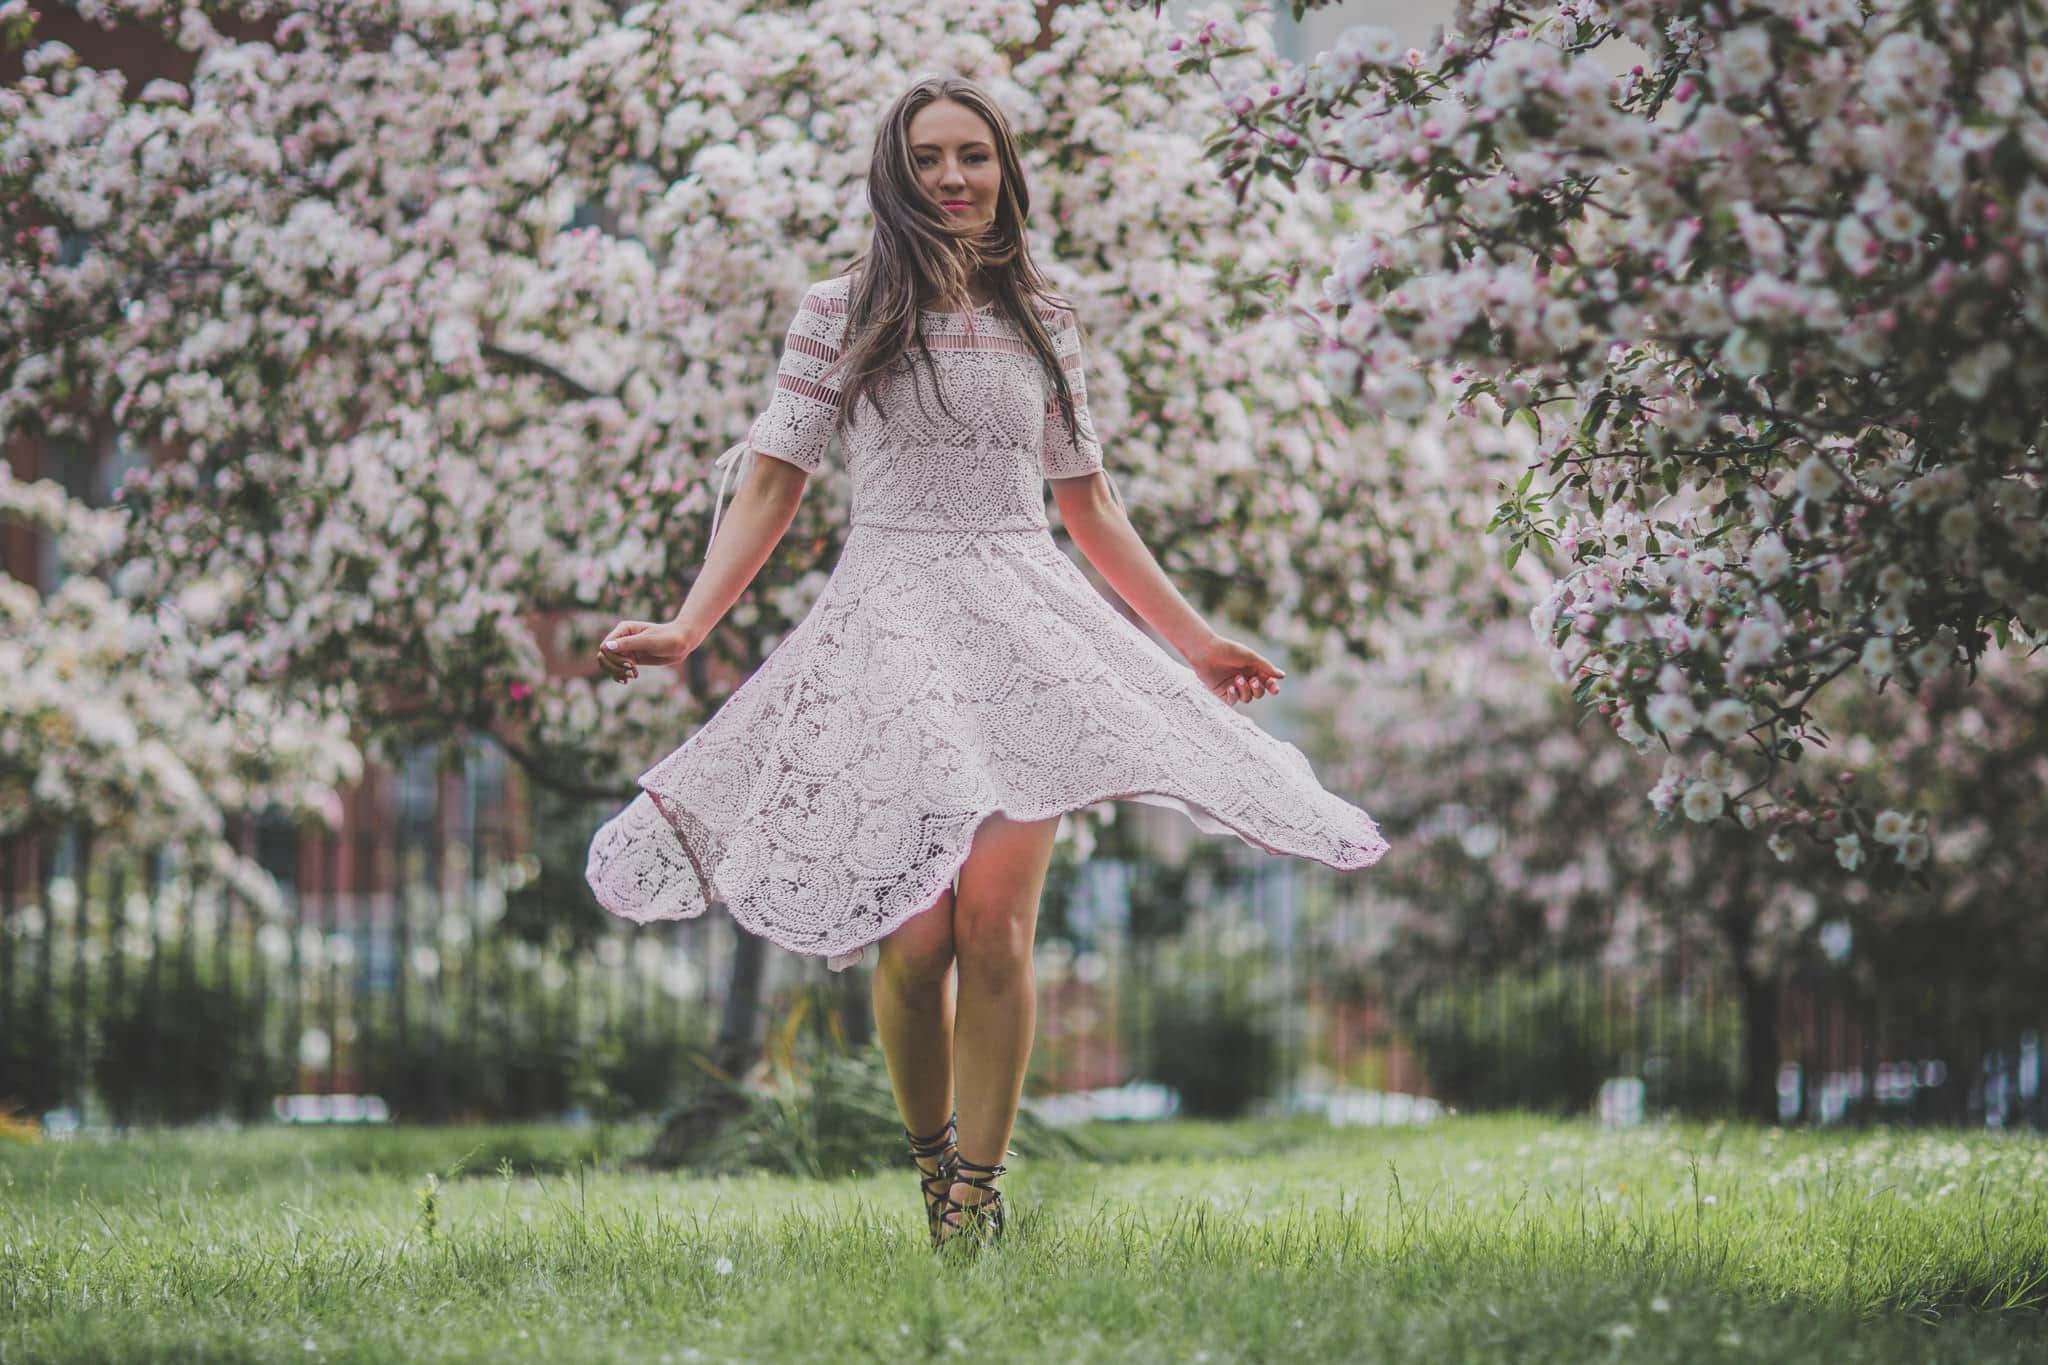 girl dancing in park with floating skirt photographed by melbourne photographer in the melbourne cbd